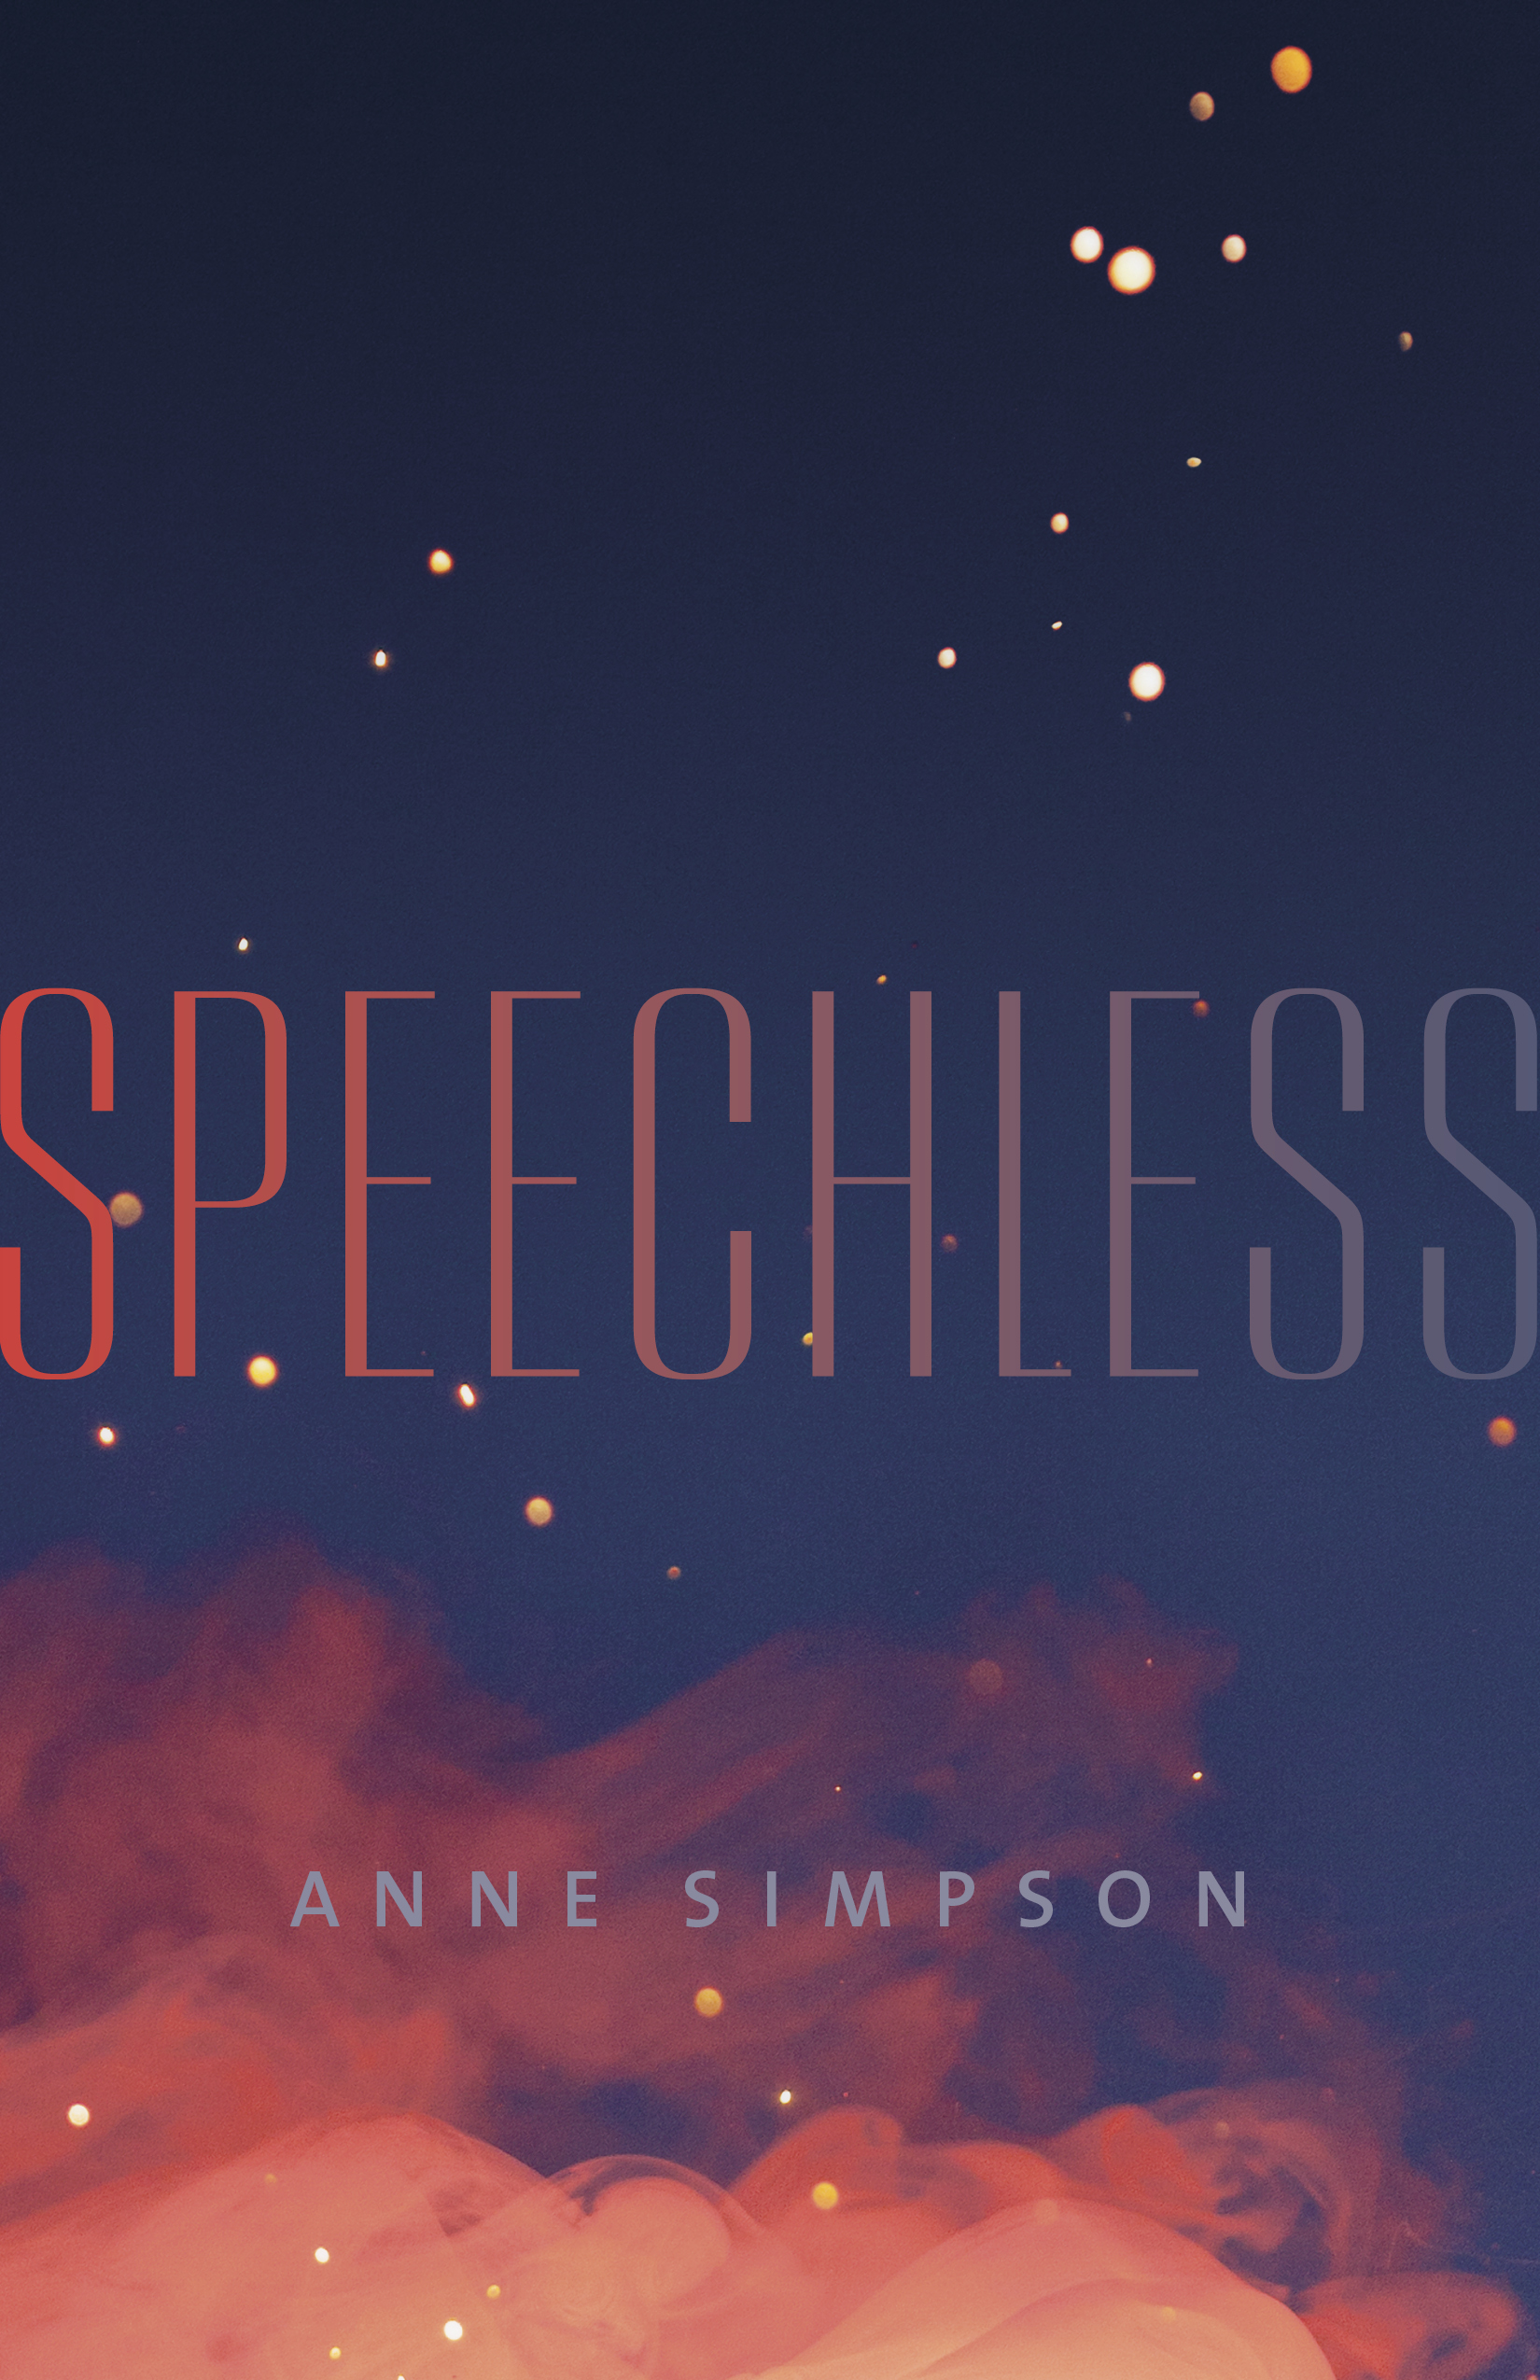 Speechless: A Novel